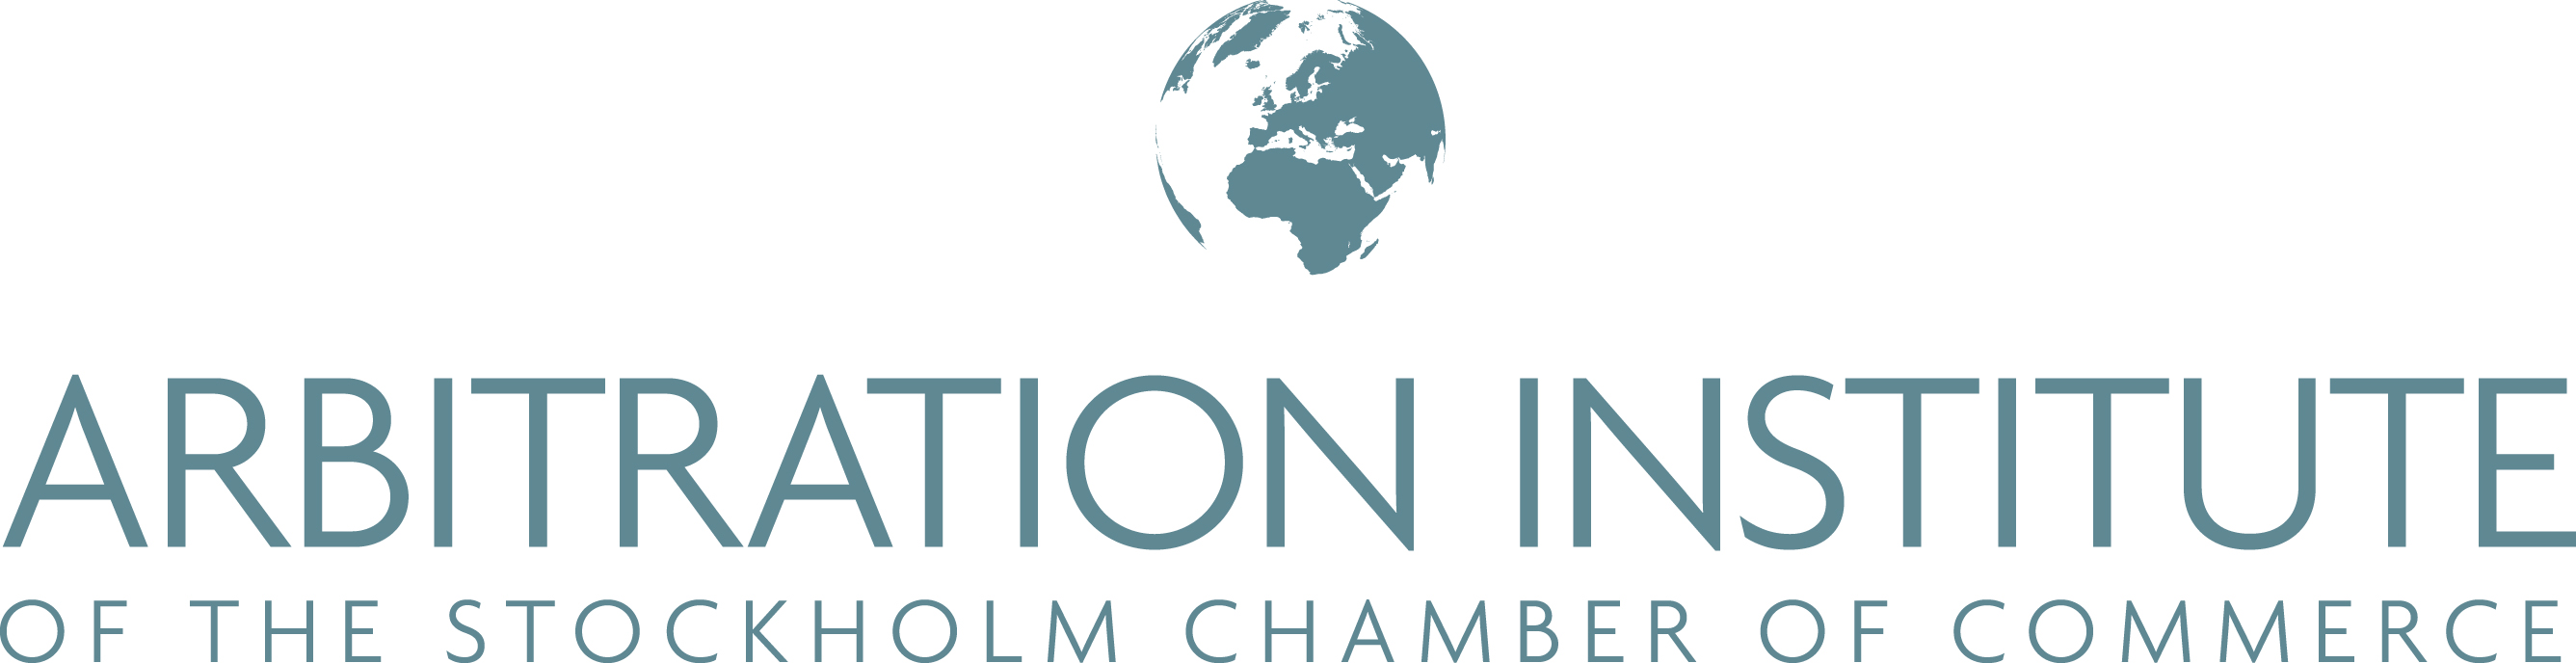 Arbitration-Institute-of-the-Stockholm-Chamber-of-Commerce